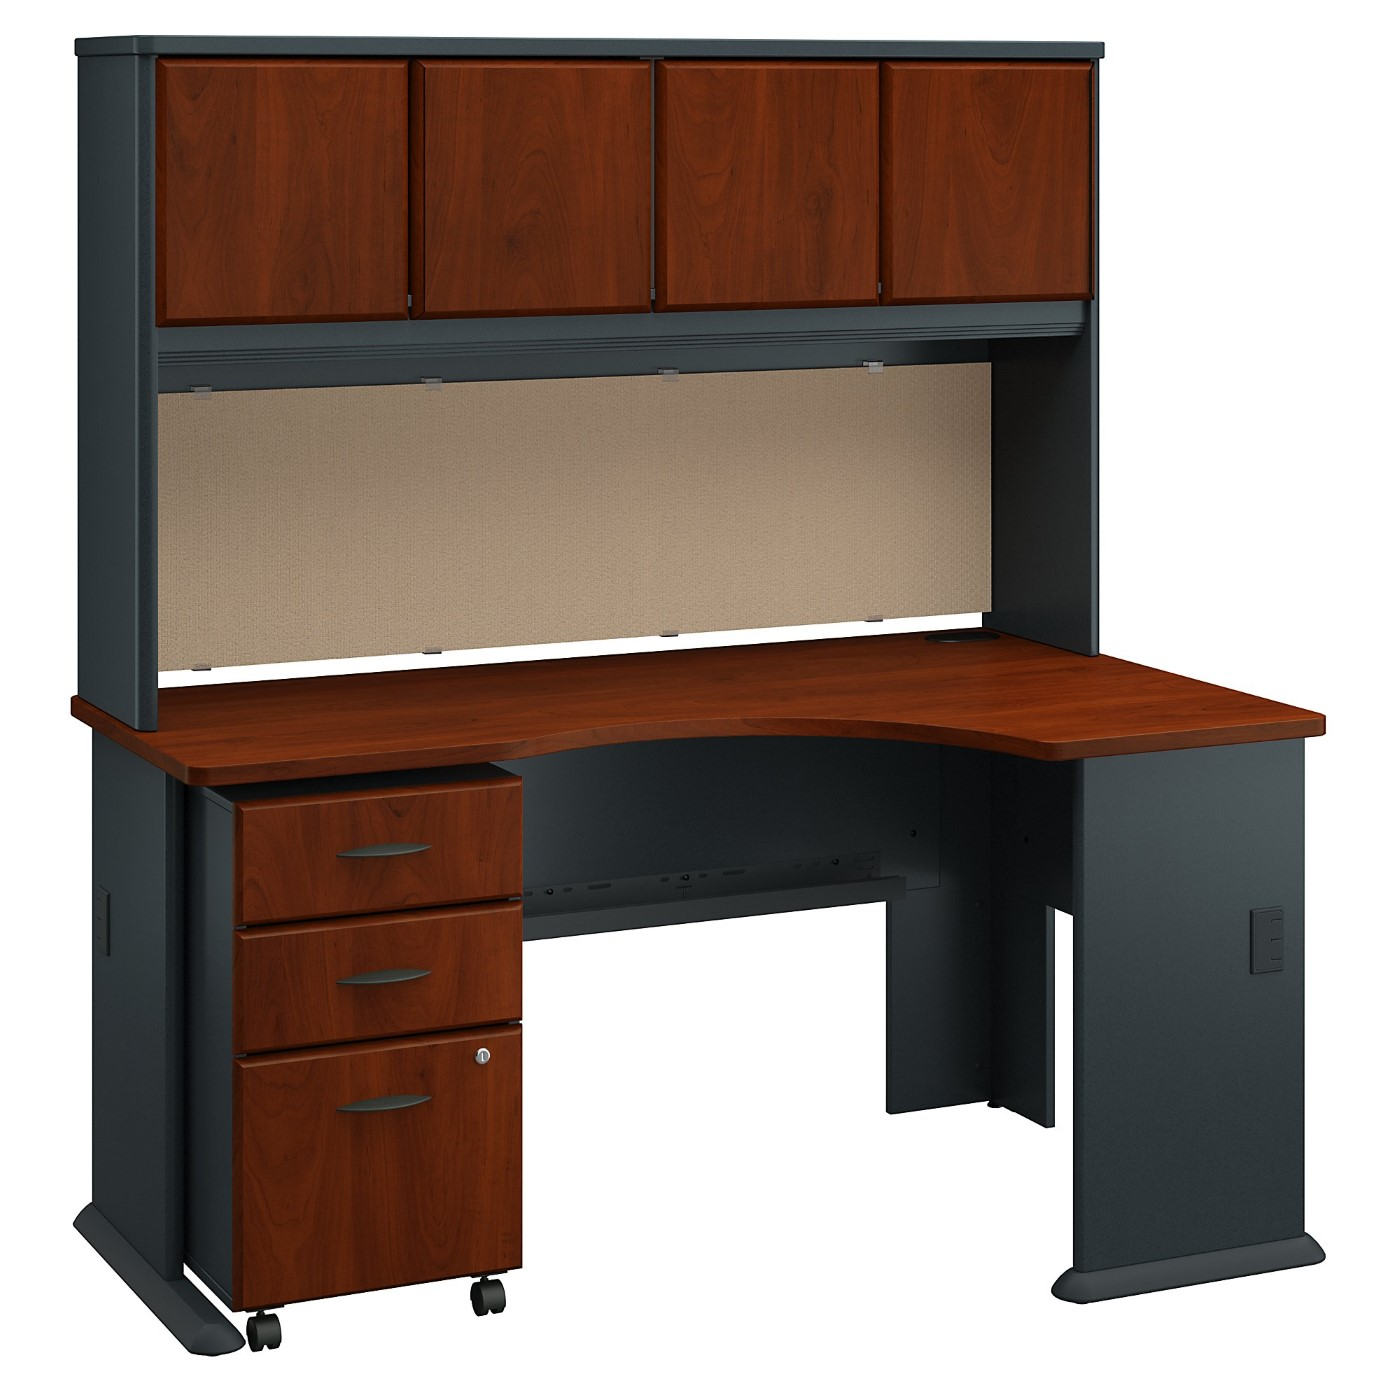 BUSH BUSINESS FURNITURE SERIES A RIGHT CORNER DESK WITH HUTCH AND MOBILE FILE CABINET. FREE SHIPPING